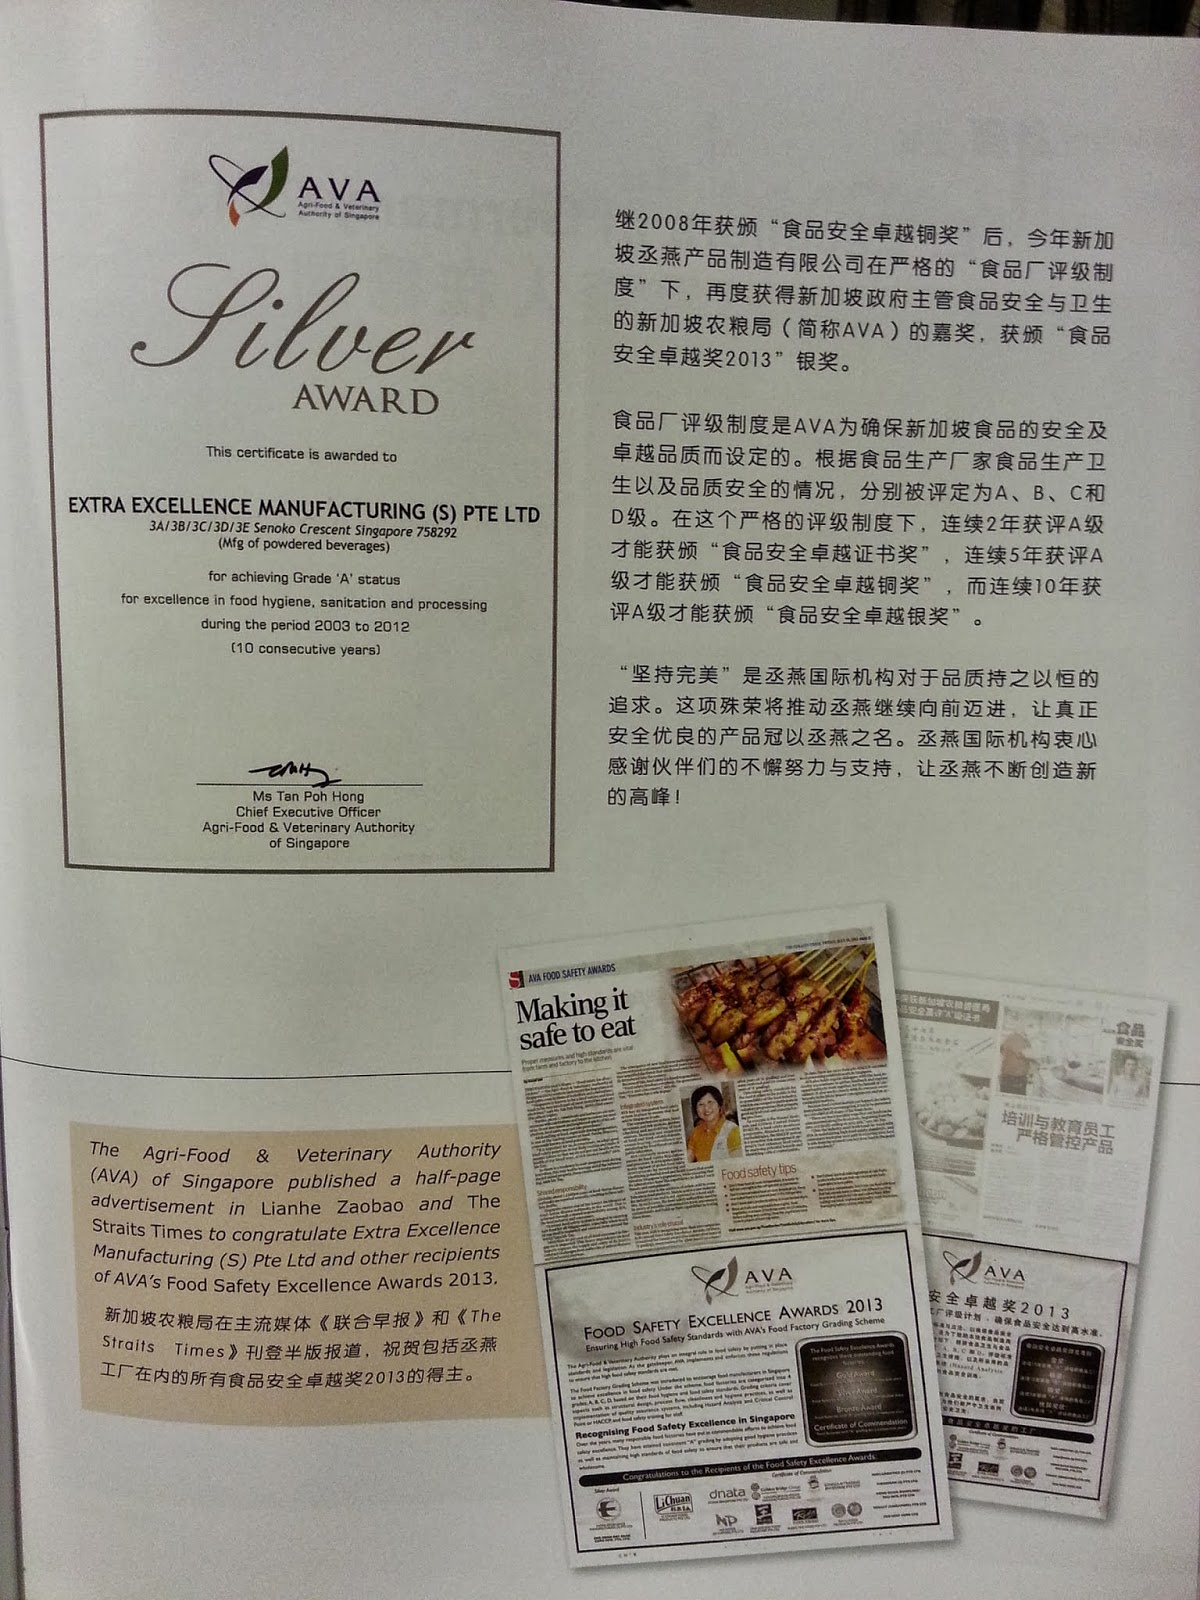 Wholesome Super Food: AVA Food Safety Excellent Award to